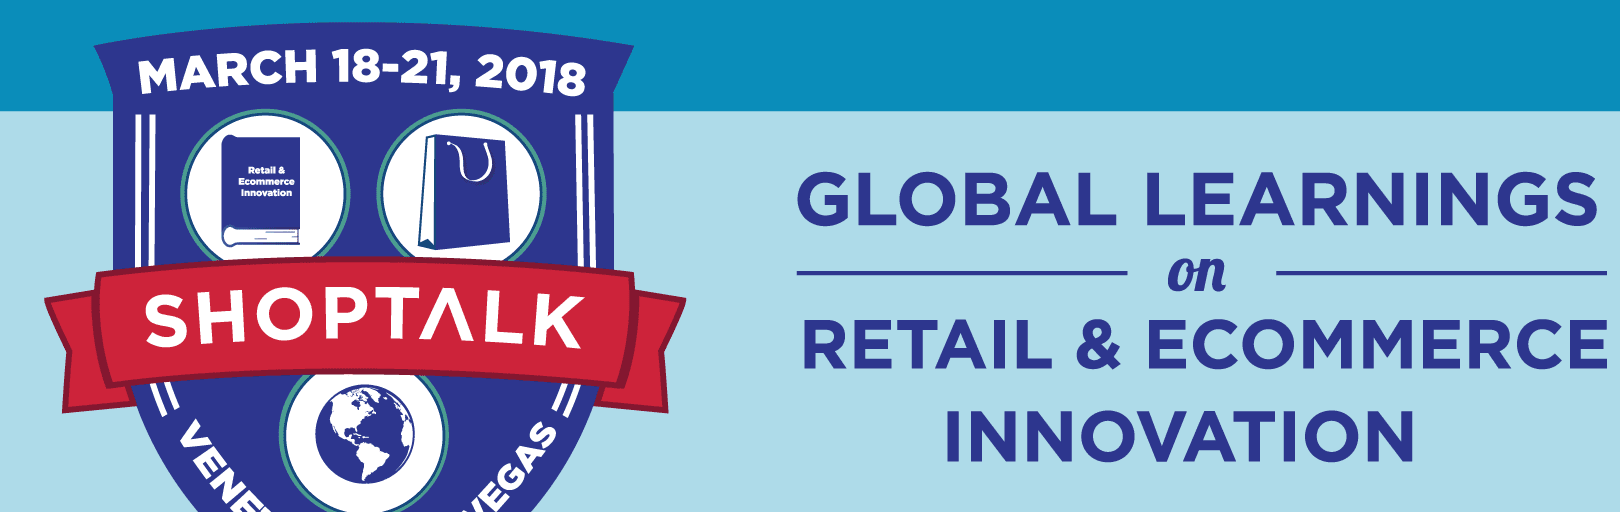 Shoptalk - Global Learnings on Retail & Ecommerce Innovation -- March 18-21, 2018 -- Venetian, Las Vegas